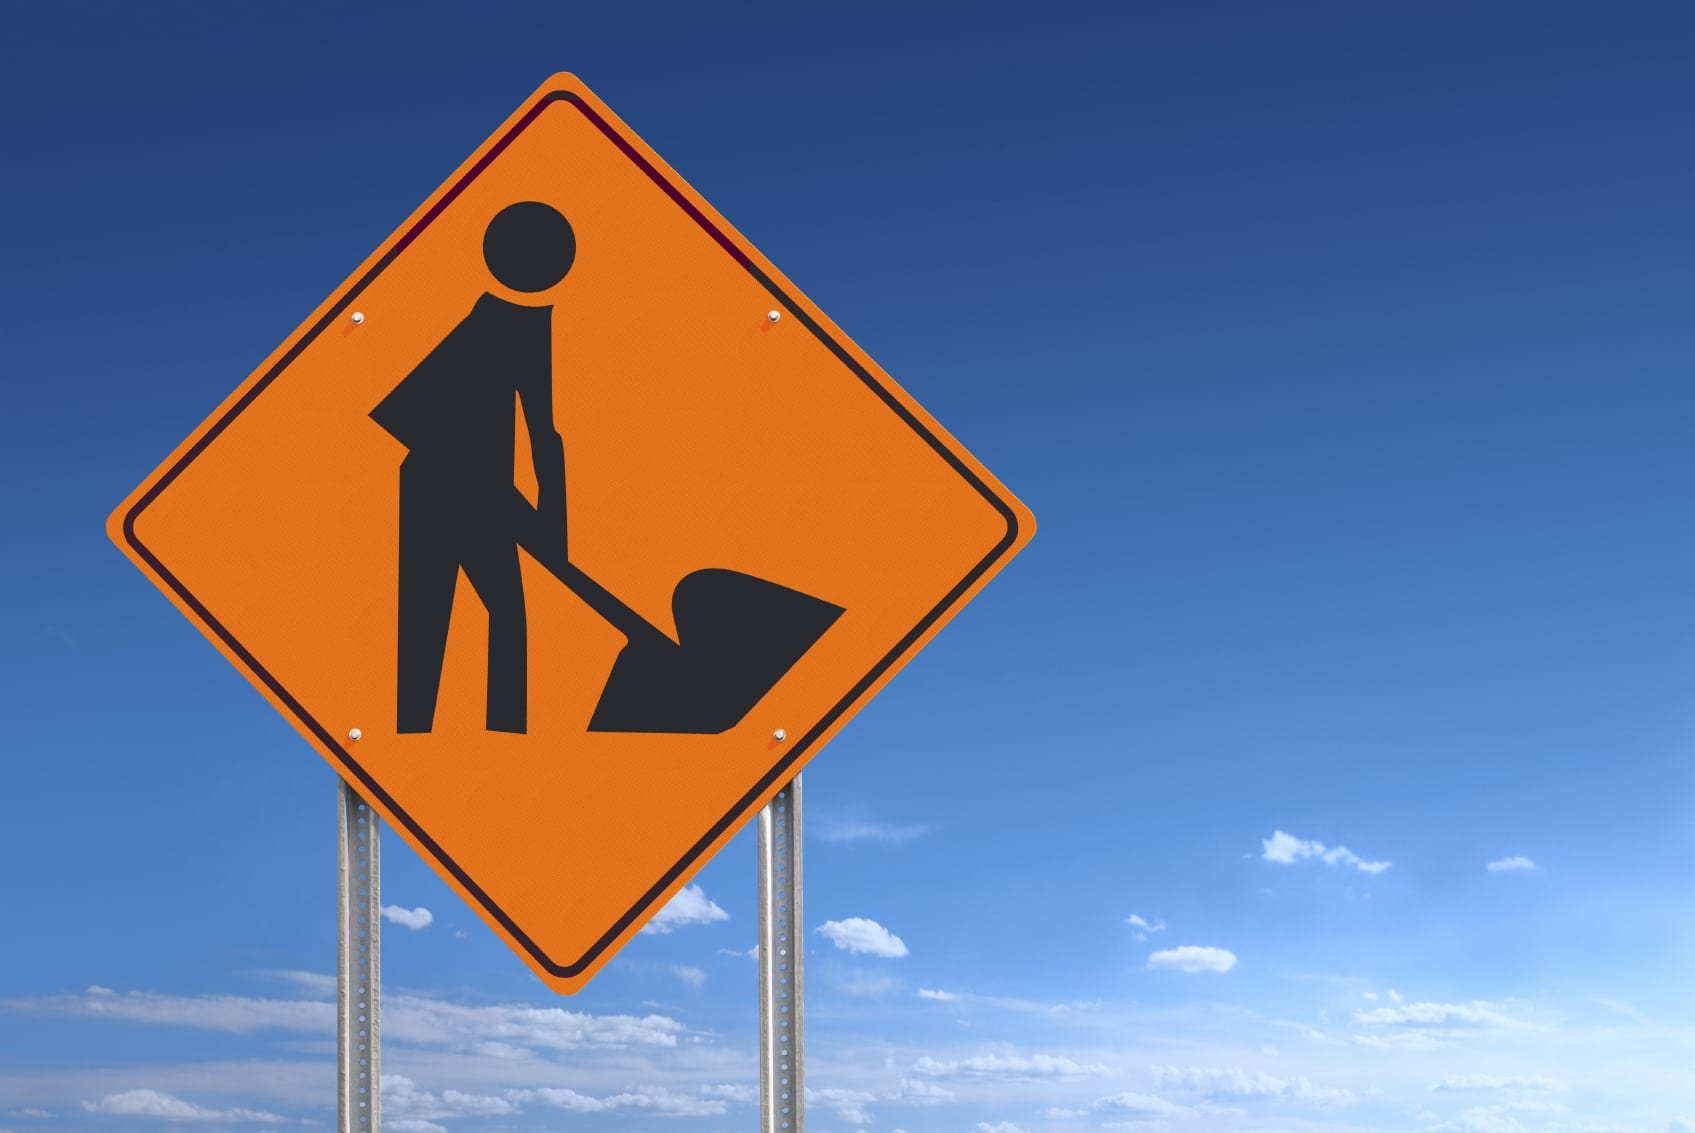 Construction Zone Warning Sign Stock Photo